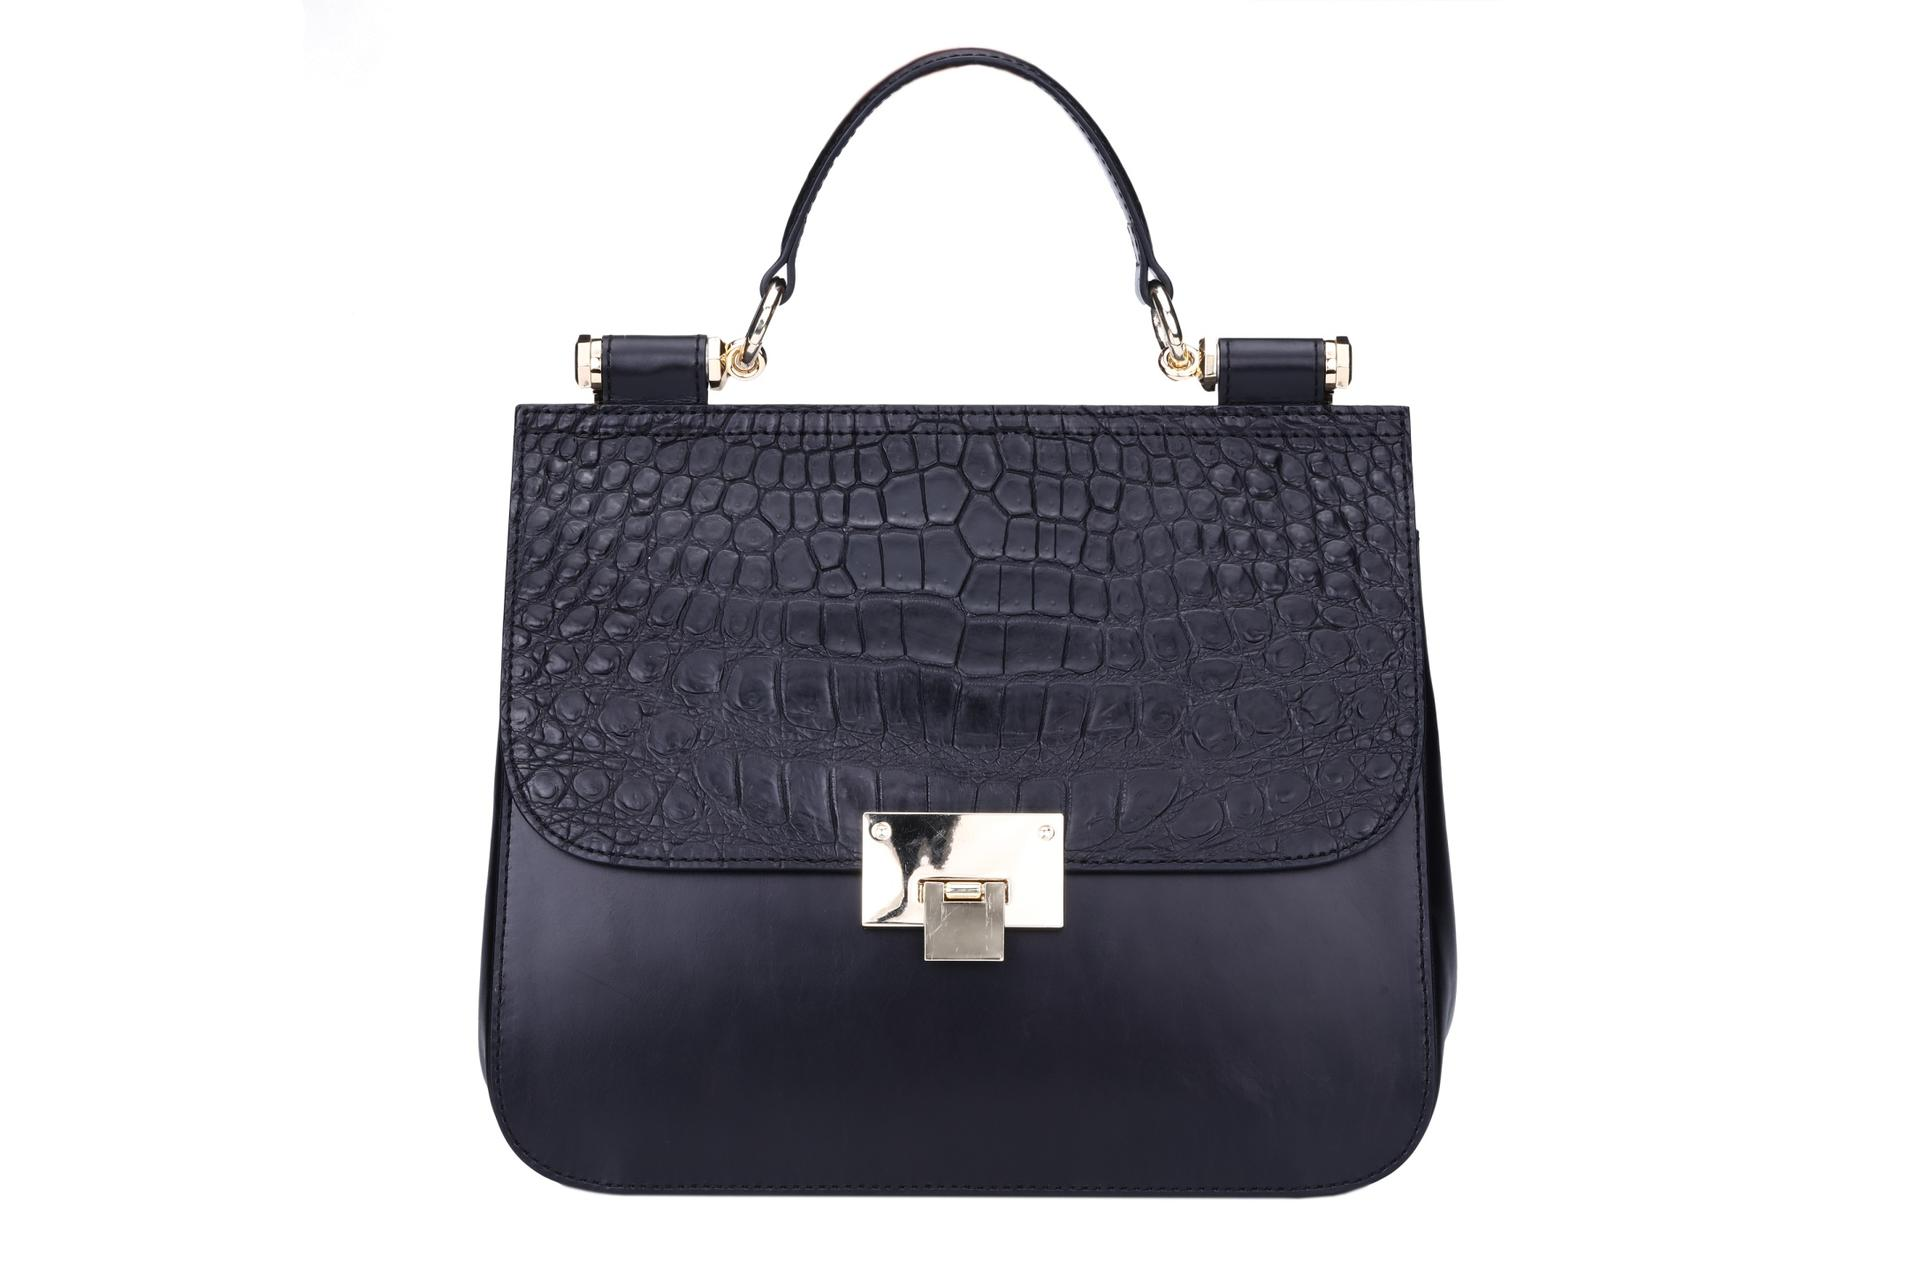 Handbag top handle crocodile leather pattern cover with metal lock